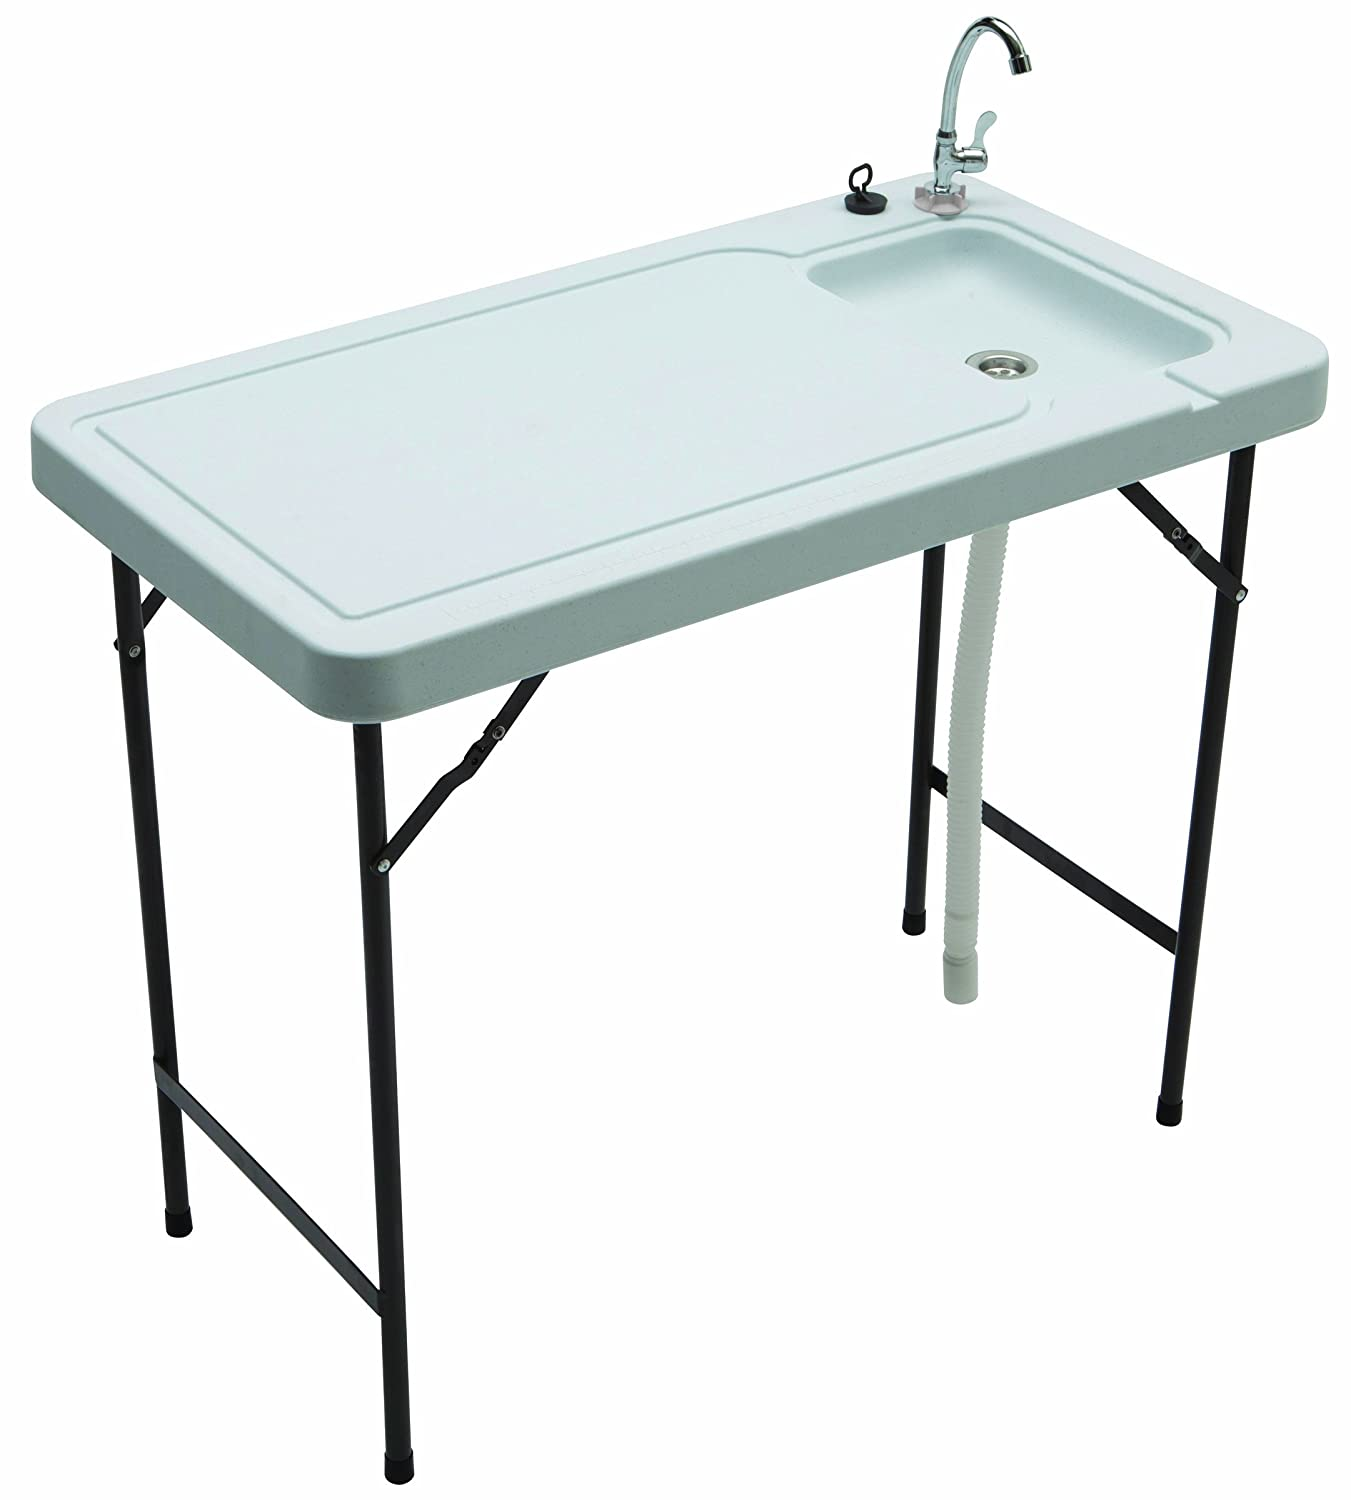 Portable Stainless Steel Sink : Outdoor Sink Stainless Steel Faucet Portable Utility Garden Fishing ...